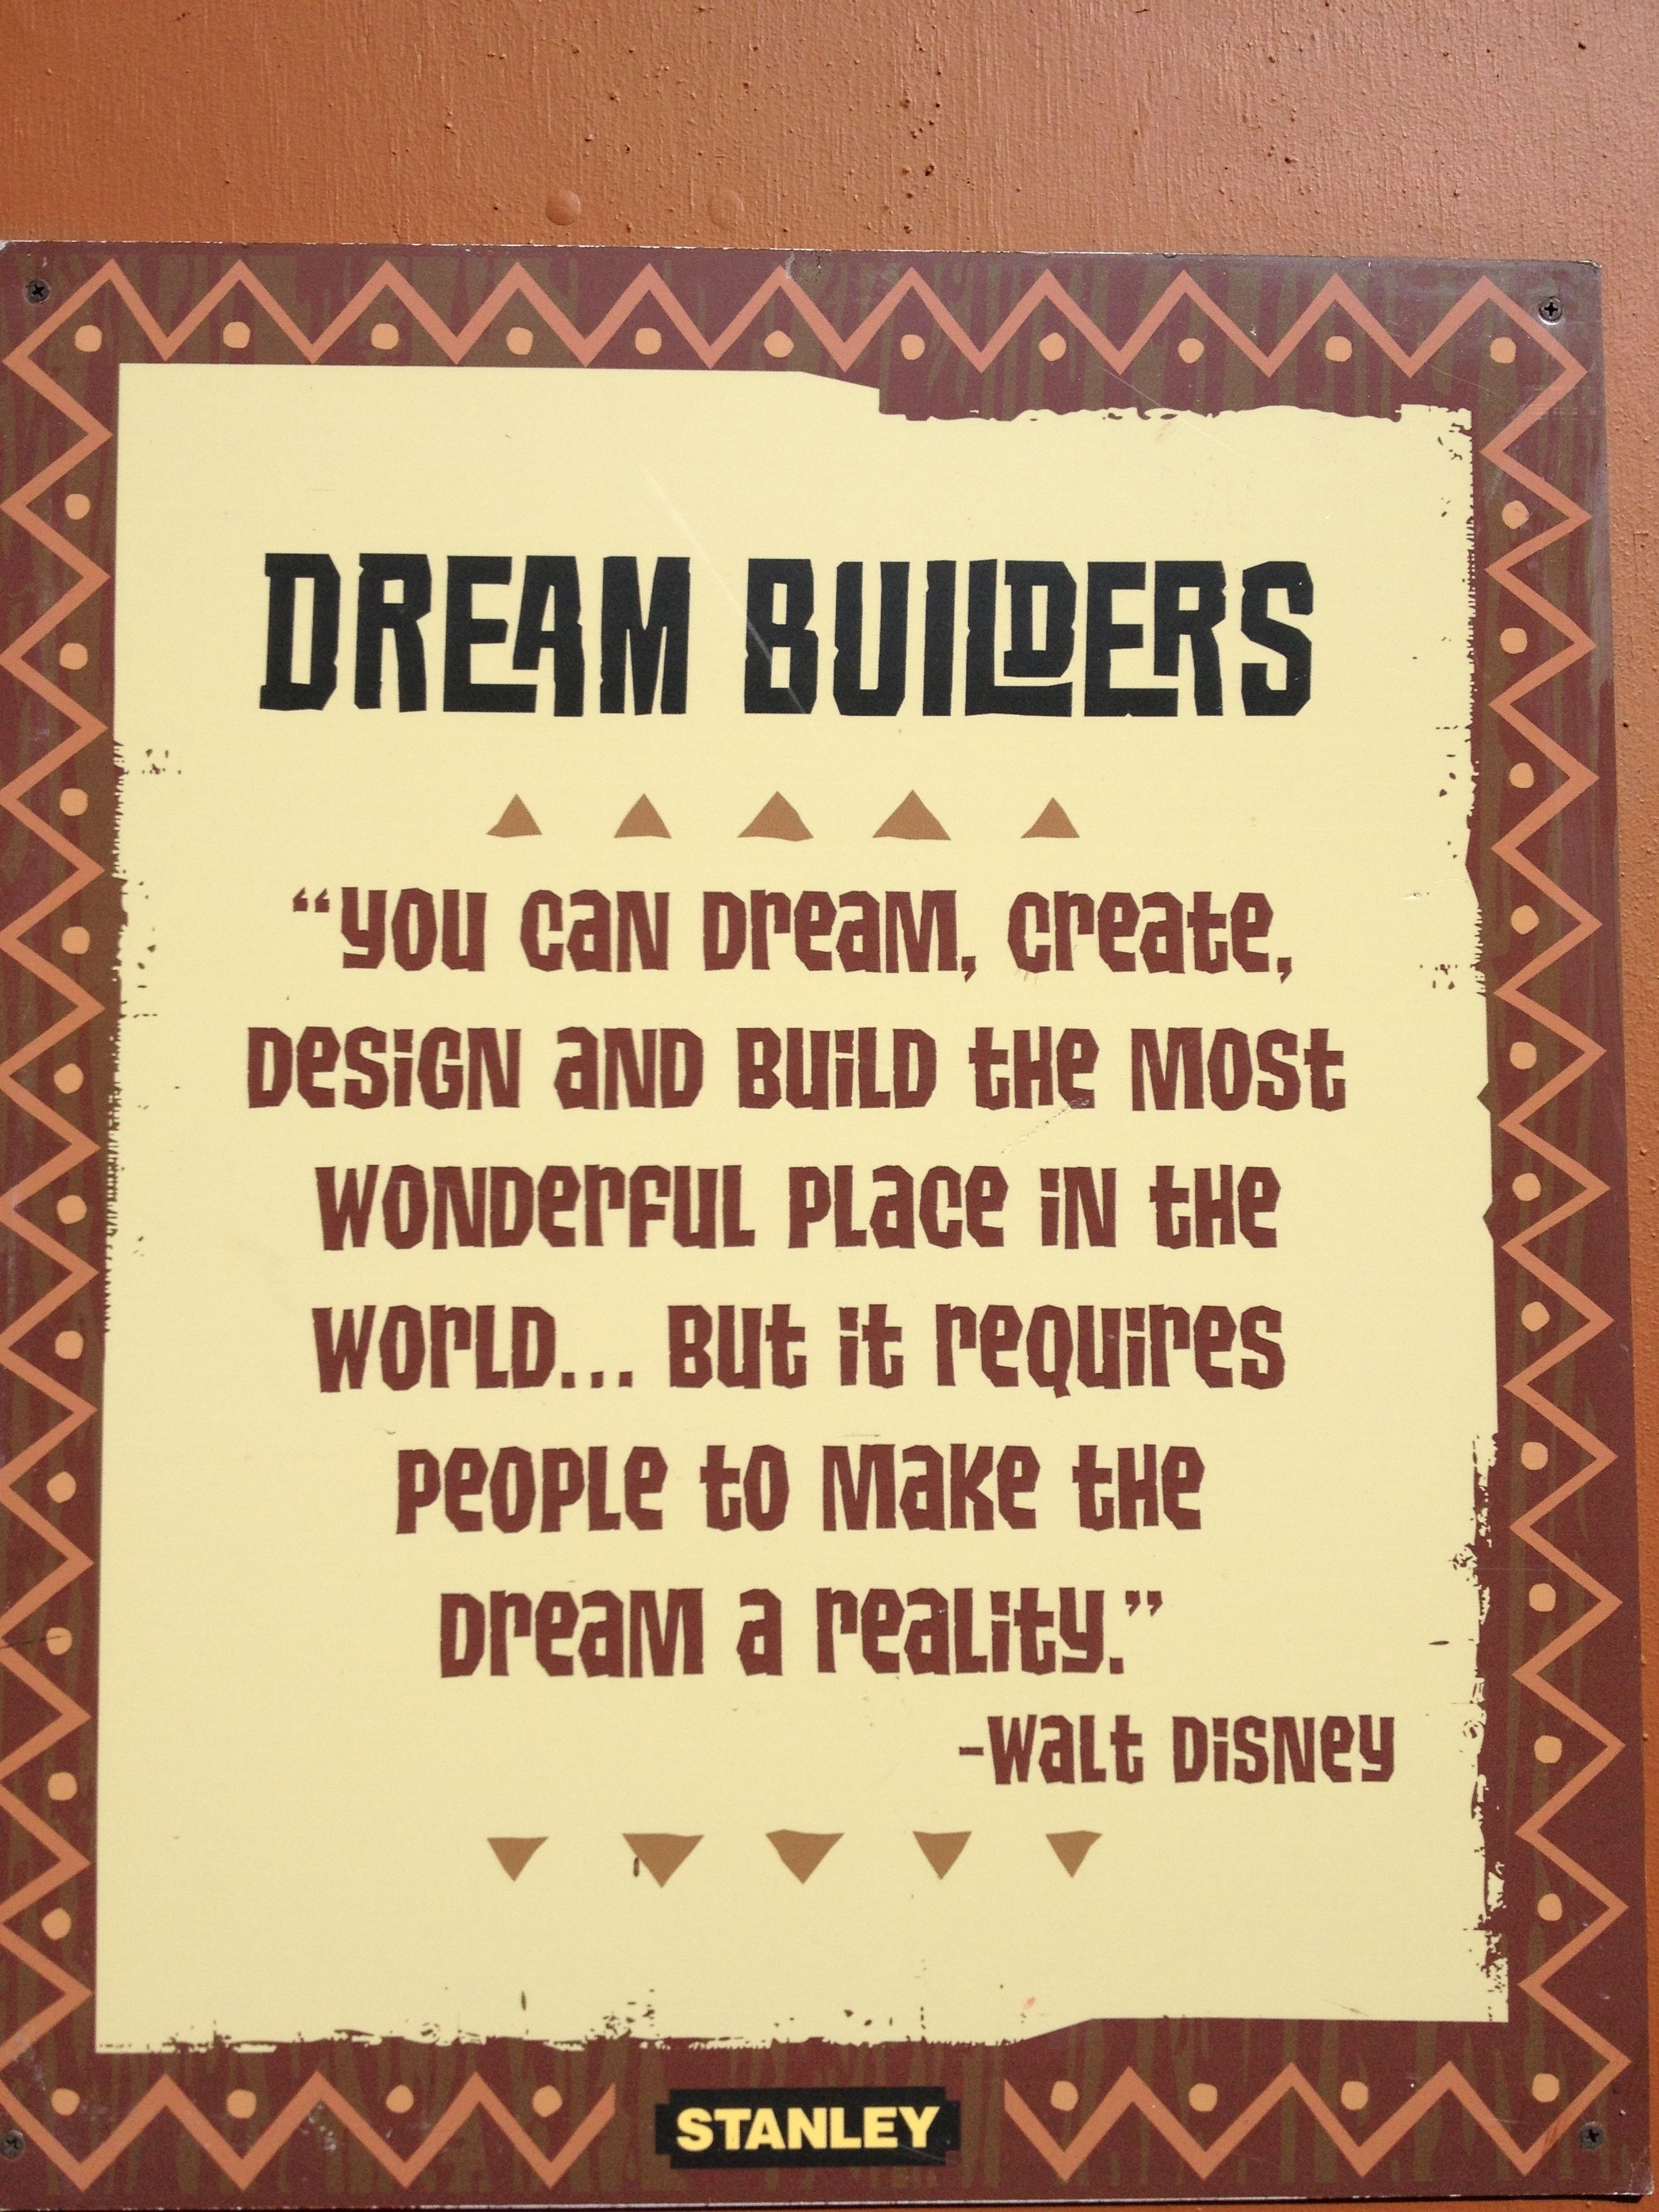 Walt Disney Quotes About Friendship Friendship Quotes Disney Movies  Bing Images  Disney Quotes